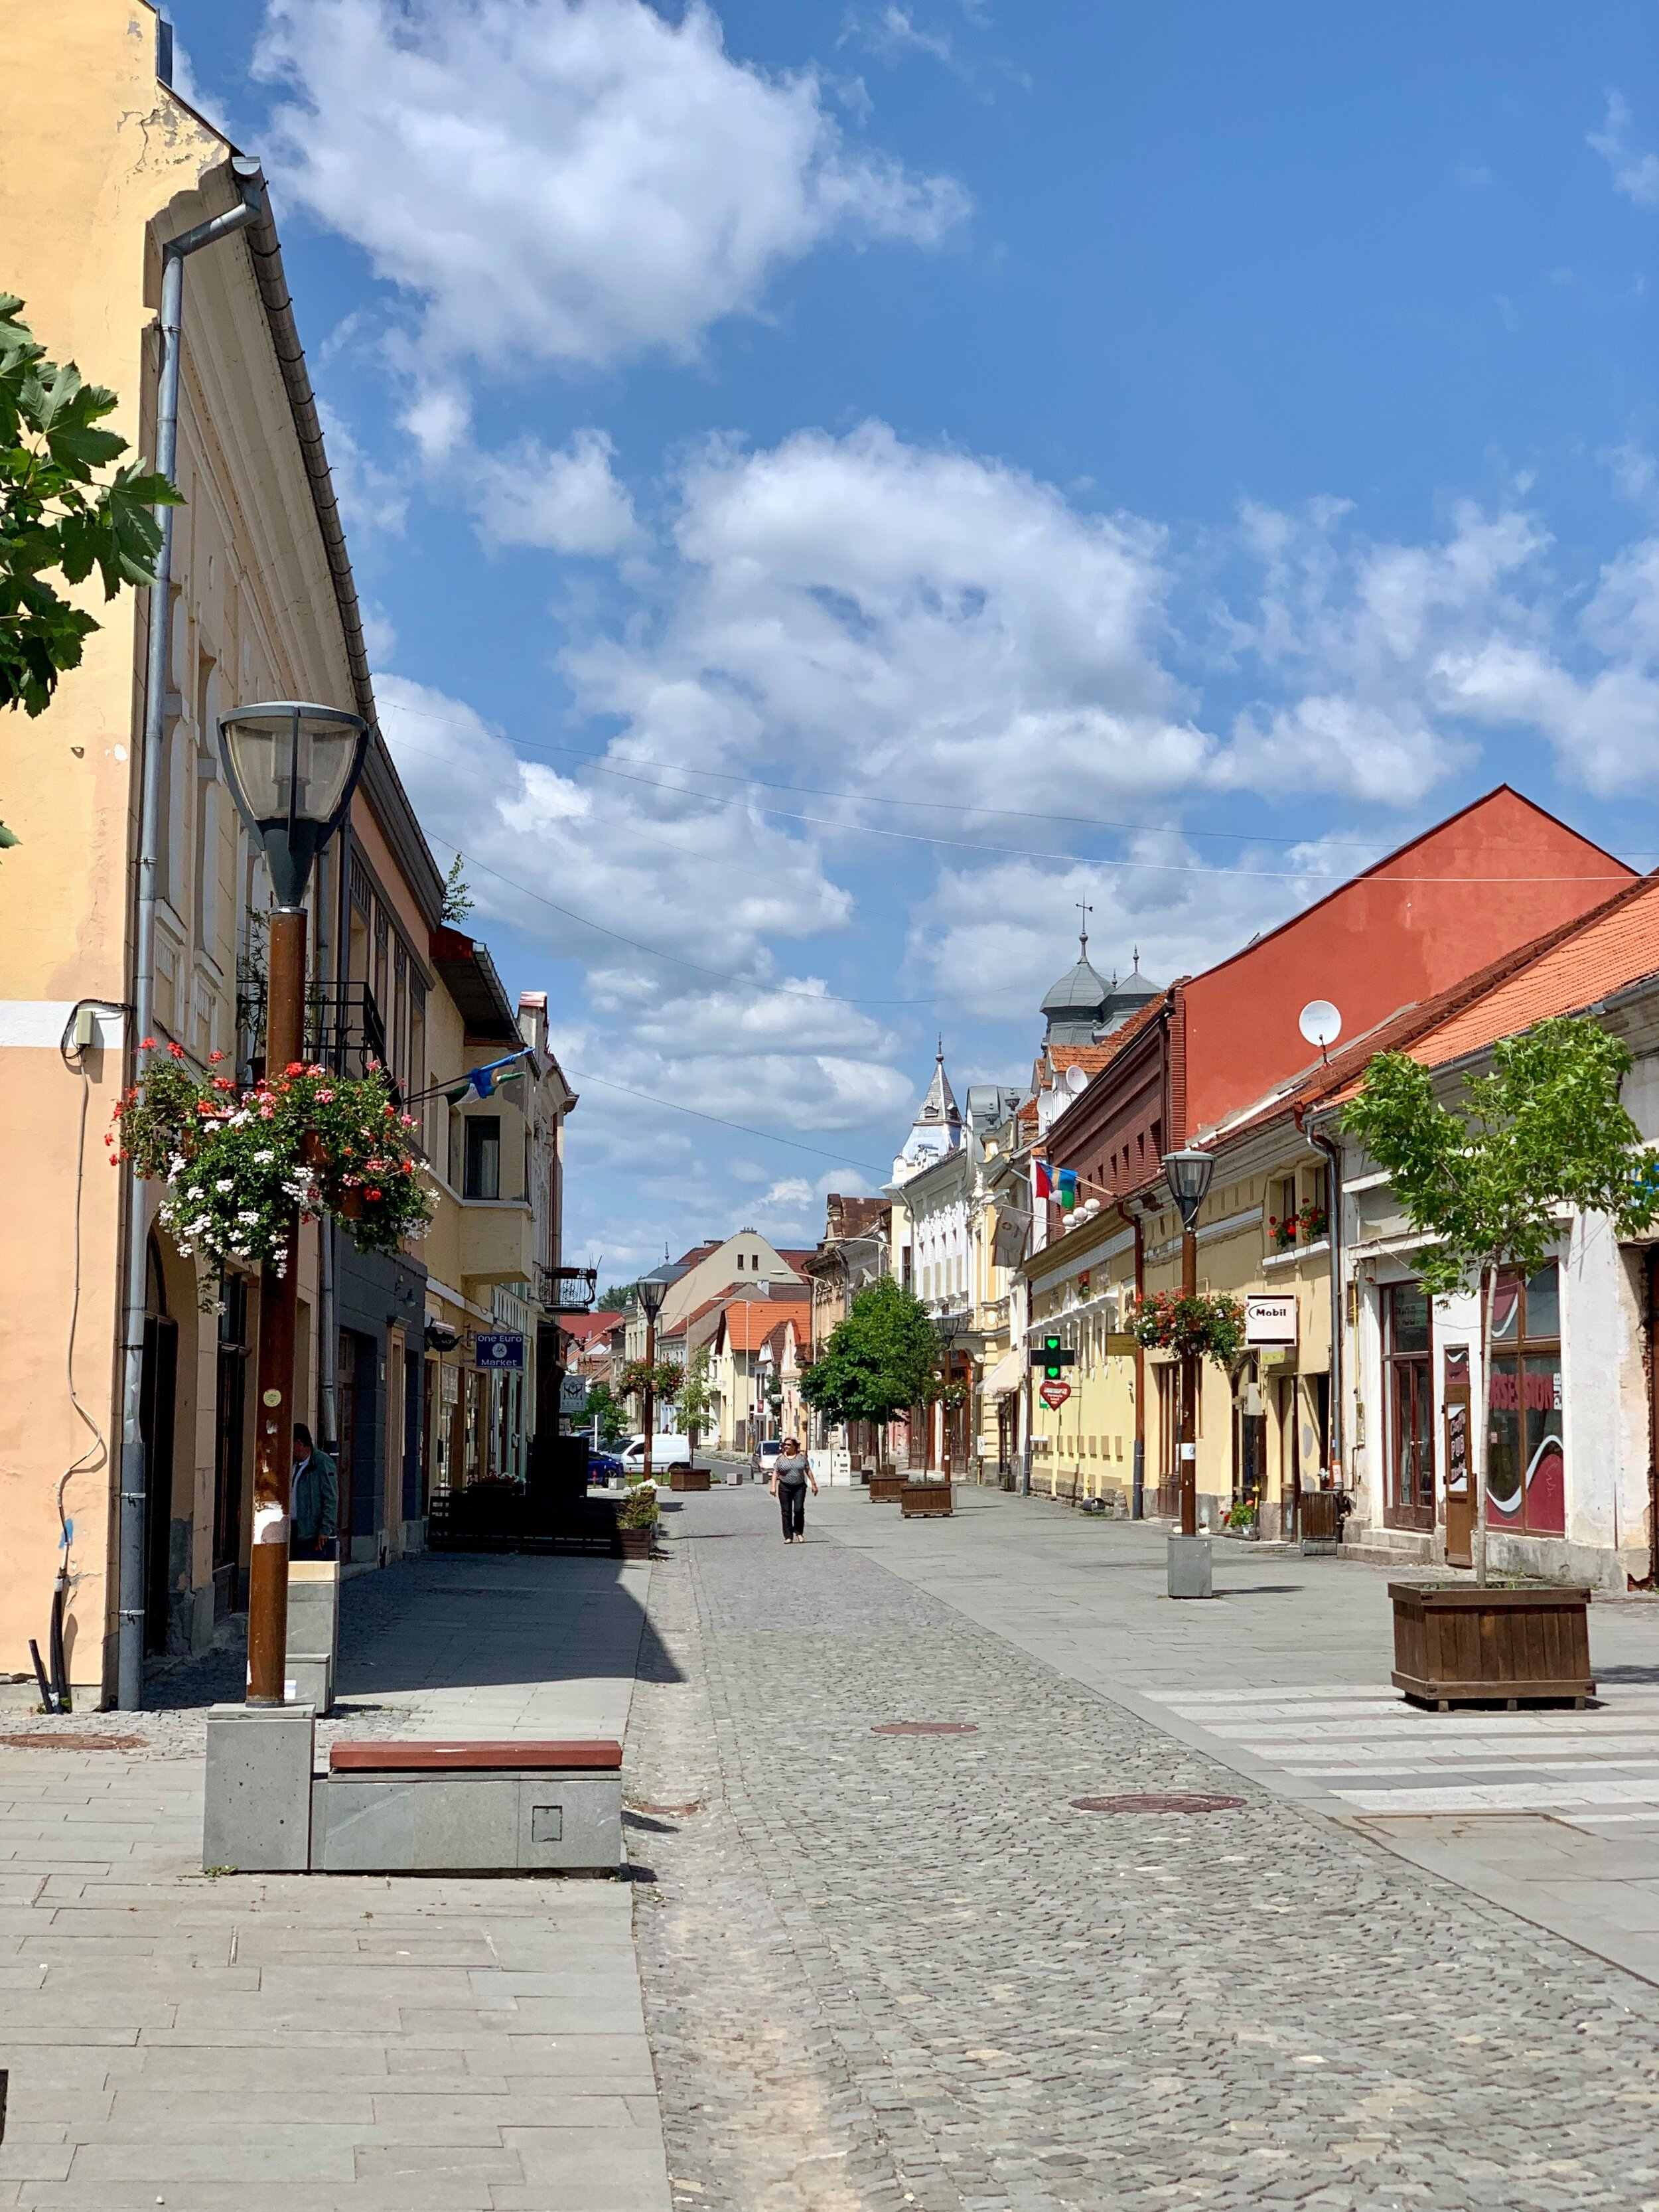 - …to it's main thoroughfares in the center of town…